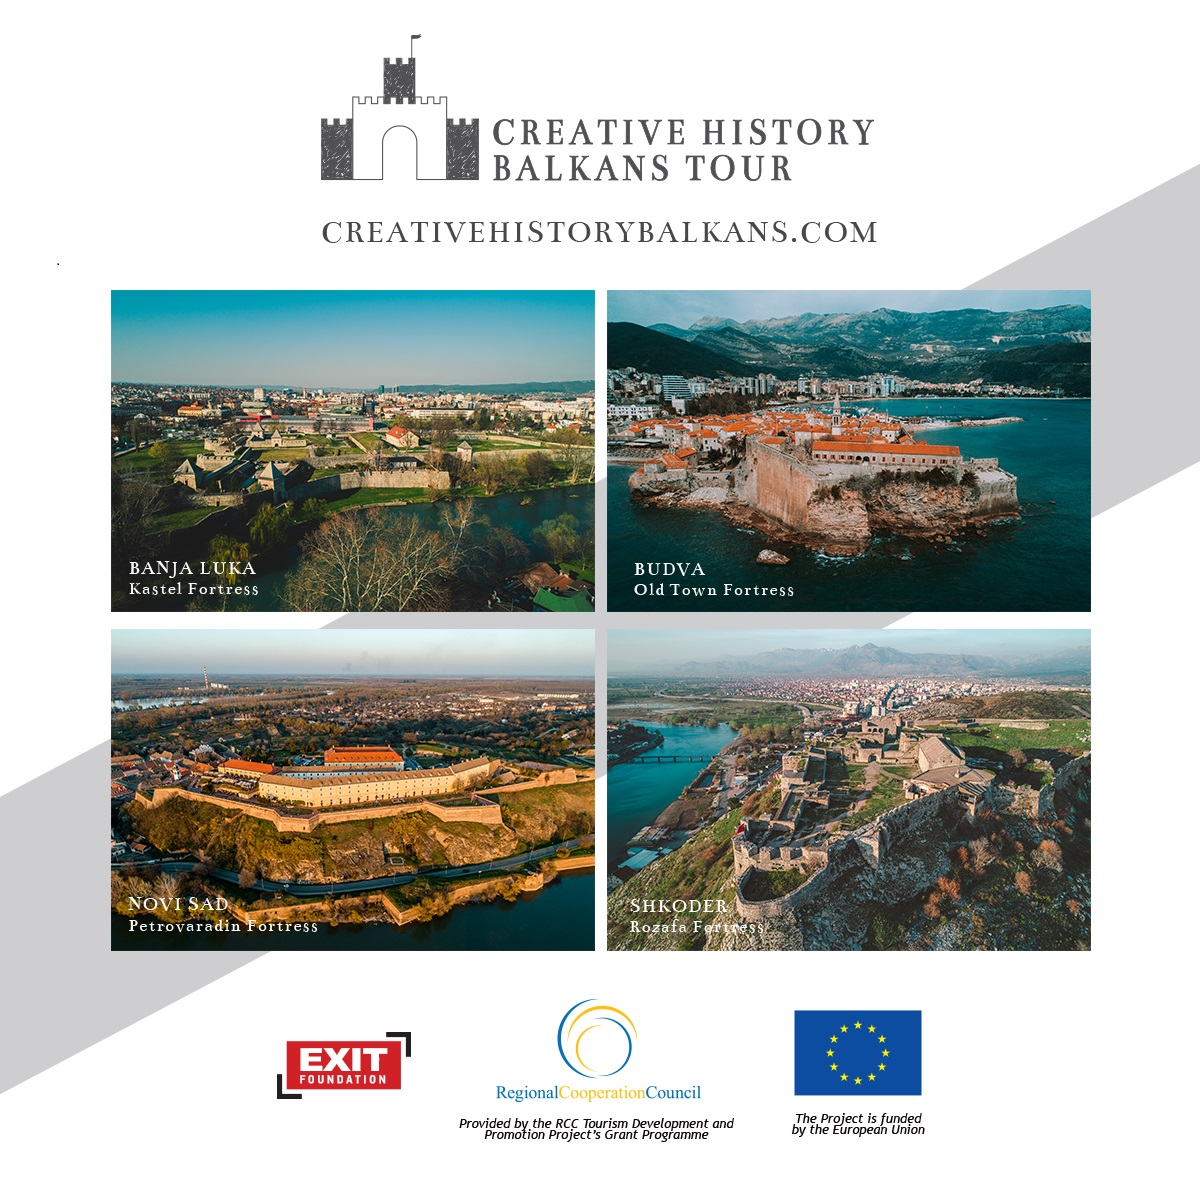 EXIT Foundation, a beneficiary of the RCC implemented and EU funded tourism development grant scheme and a winner of the RCC's champion of regional cooperation award, launched  the Creative History Balkans Tour which takes visitors to four amazing fortresses in the region, in Novi Sad on 5 June 2019 (Photo: EXIT Foundation)